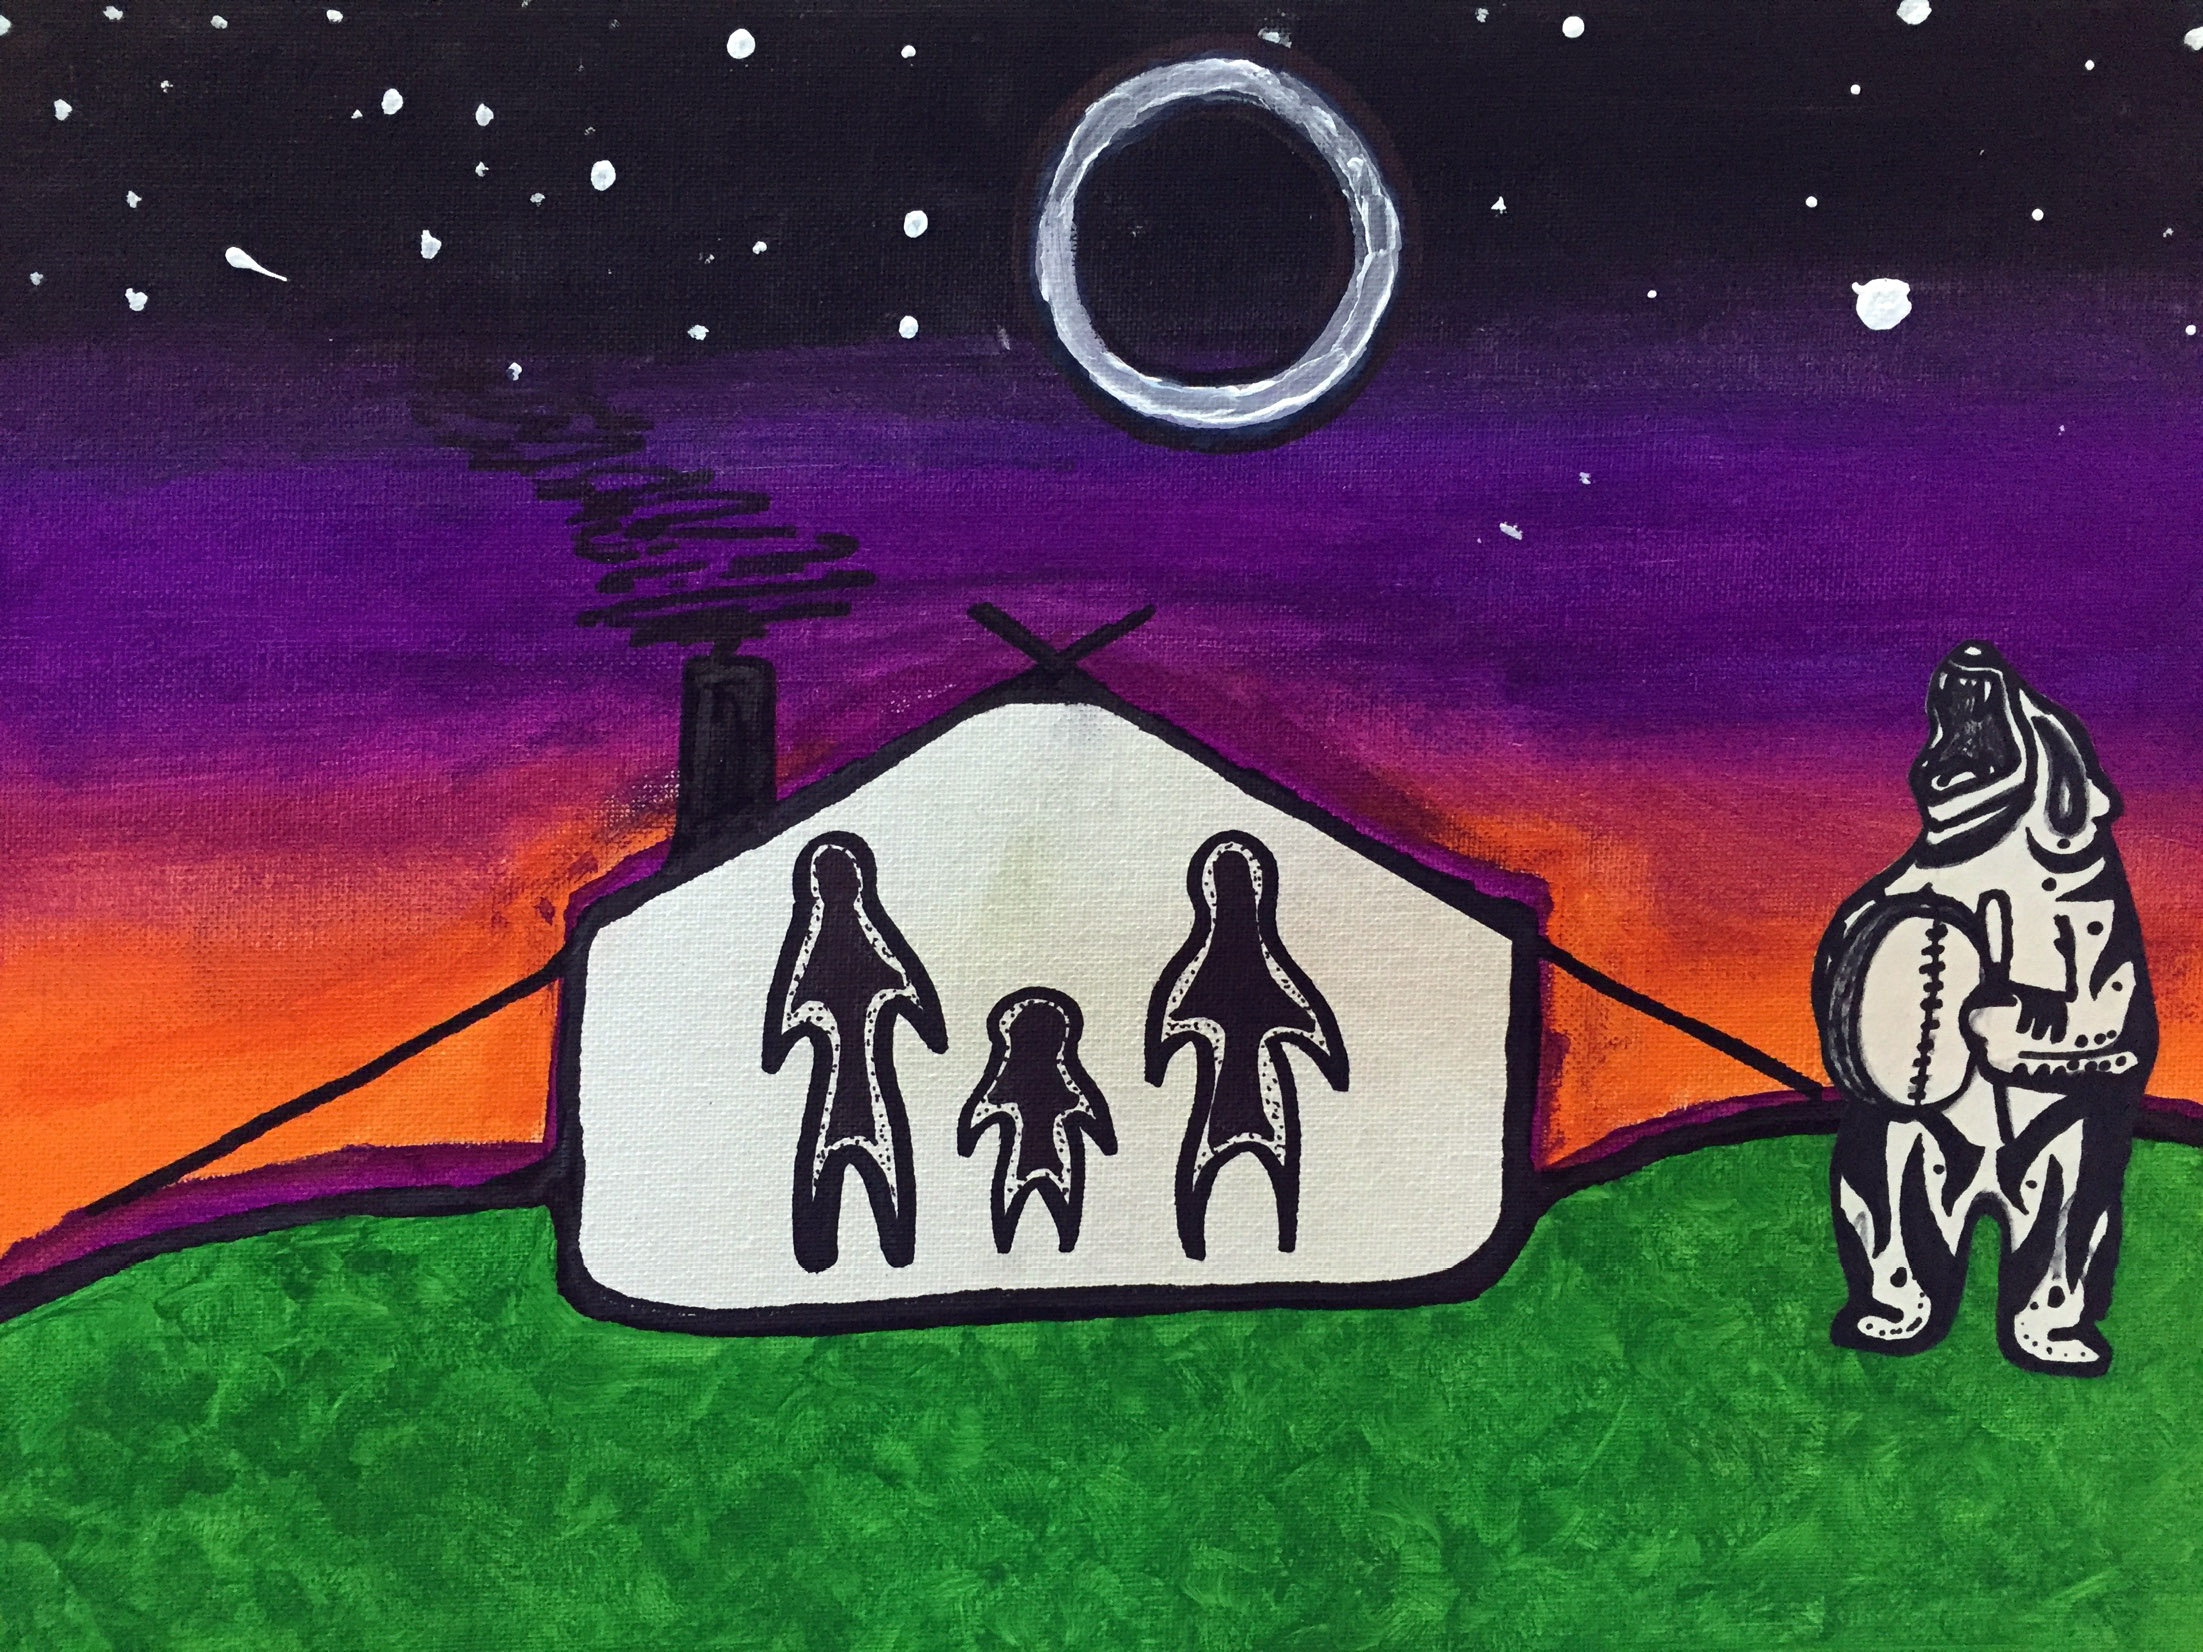 Cree Art to Foster Stronger Community 1